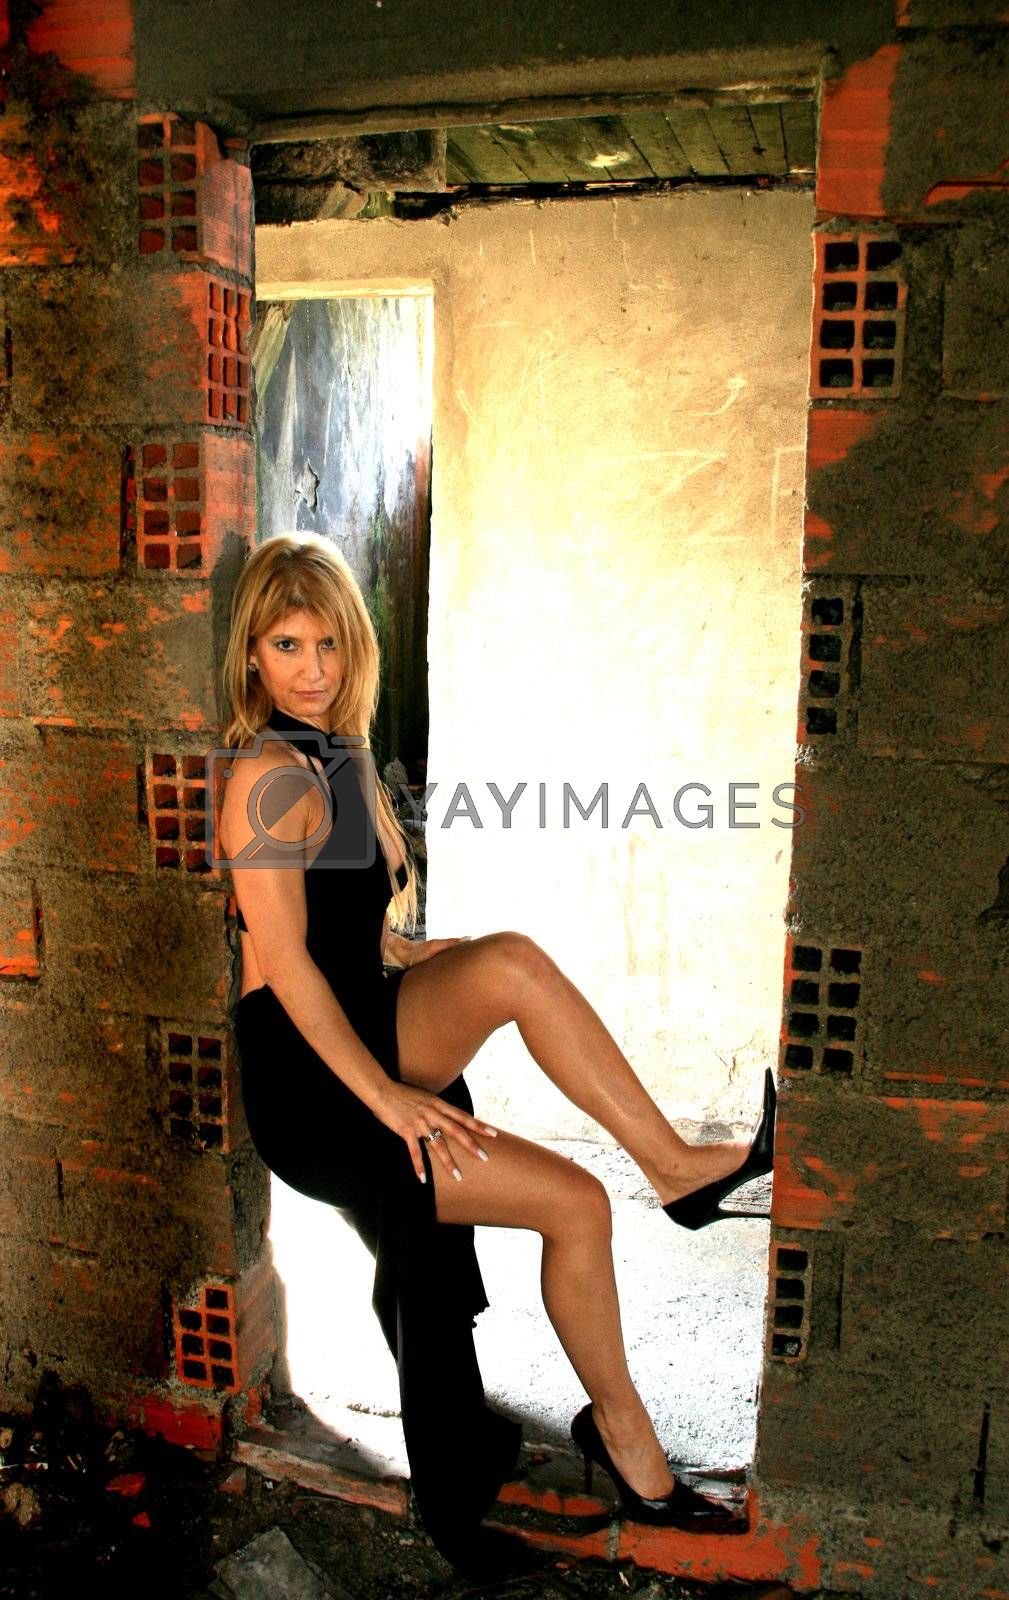 Sexy fashion girl in old building